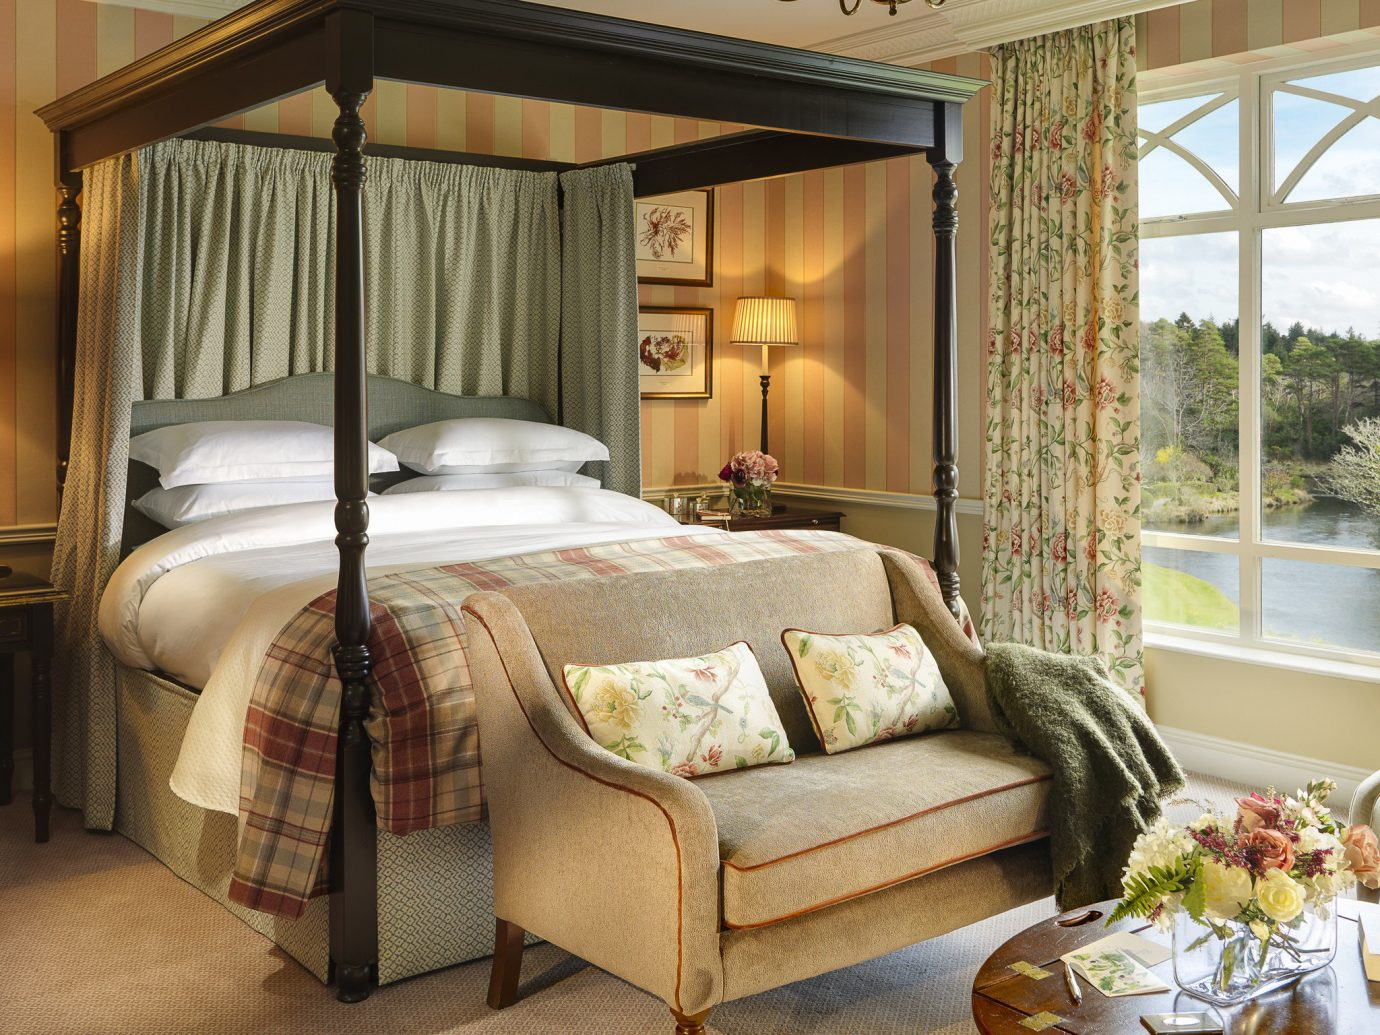 Bedroom at Ballynahinch Castle in Ireland